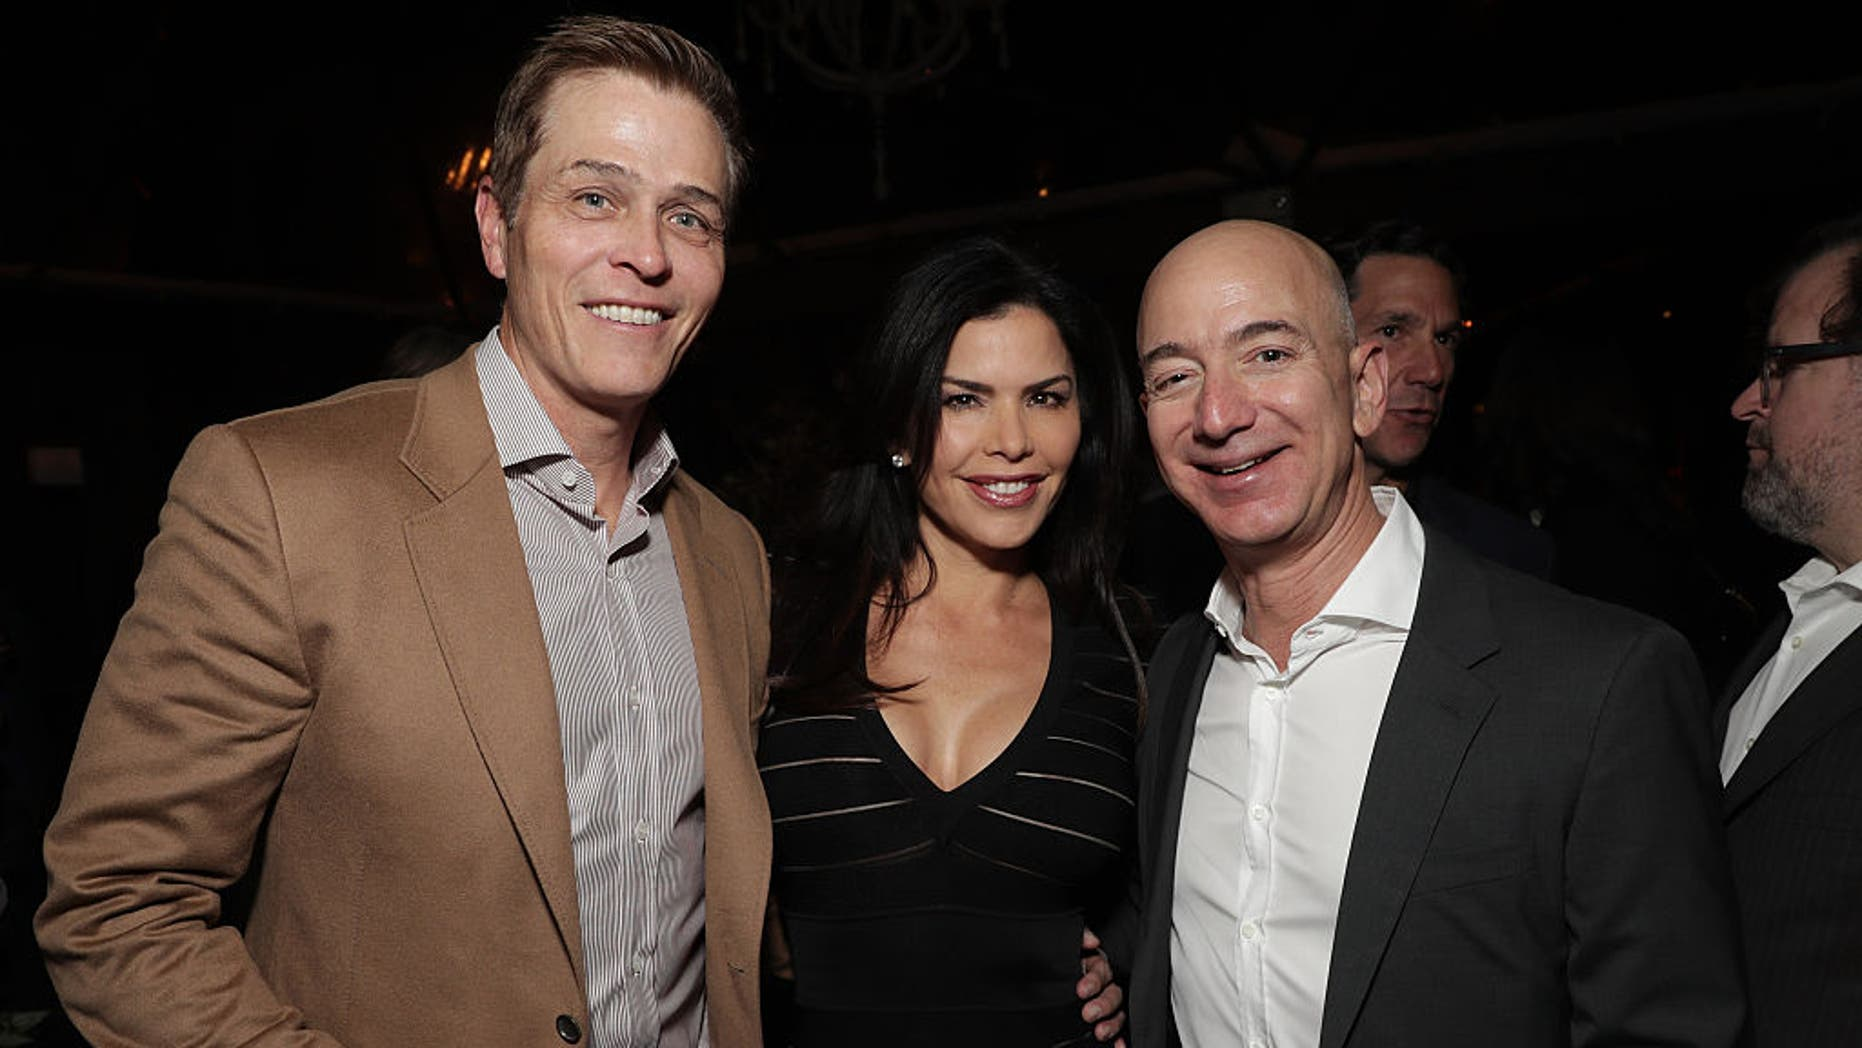 Lauren Sanchez and her reportedly-estranged husband Patrick Whitesell with Amazon CEO Jeff Bezos in 2016. (Photo by Todd Williamson/Getty Images for Amazon Studios)